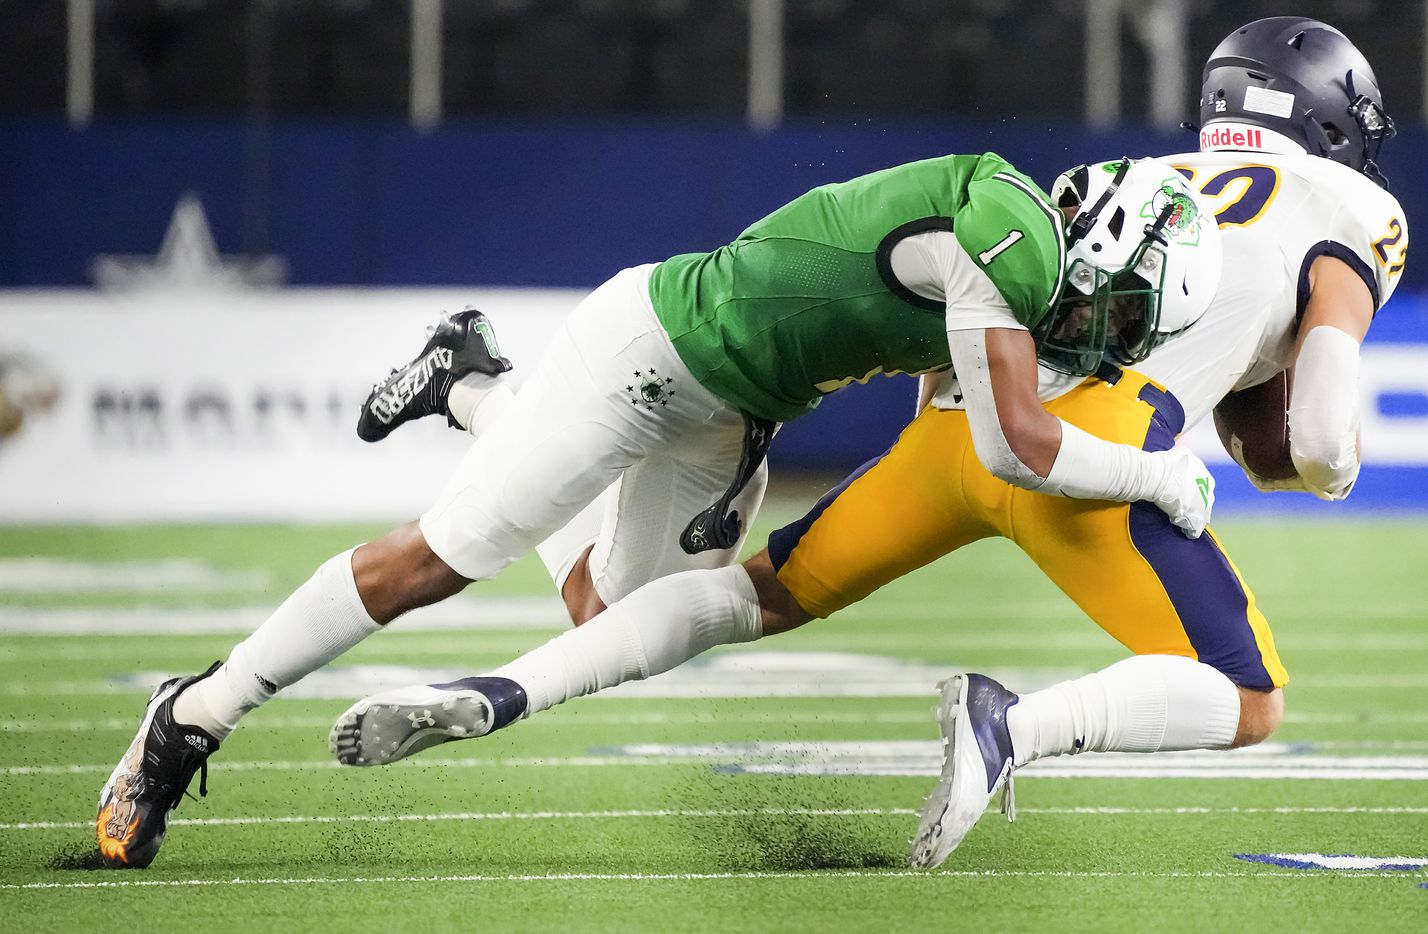 Southlake Carroll defensive back Avyonne Jones (1) brings down Highland Park's Luke Rossley (22) during the first half of a high school football game at AT&T Stadium on Thursday, Aug. 26, 2021, in Arlington.